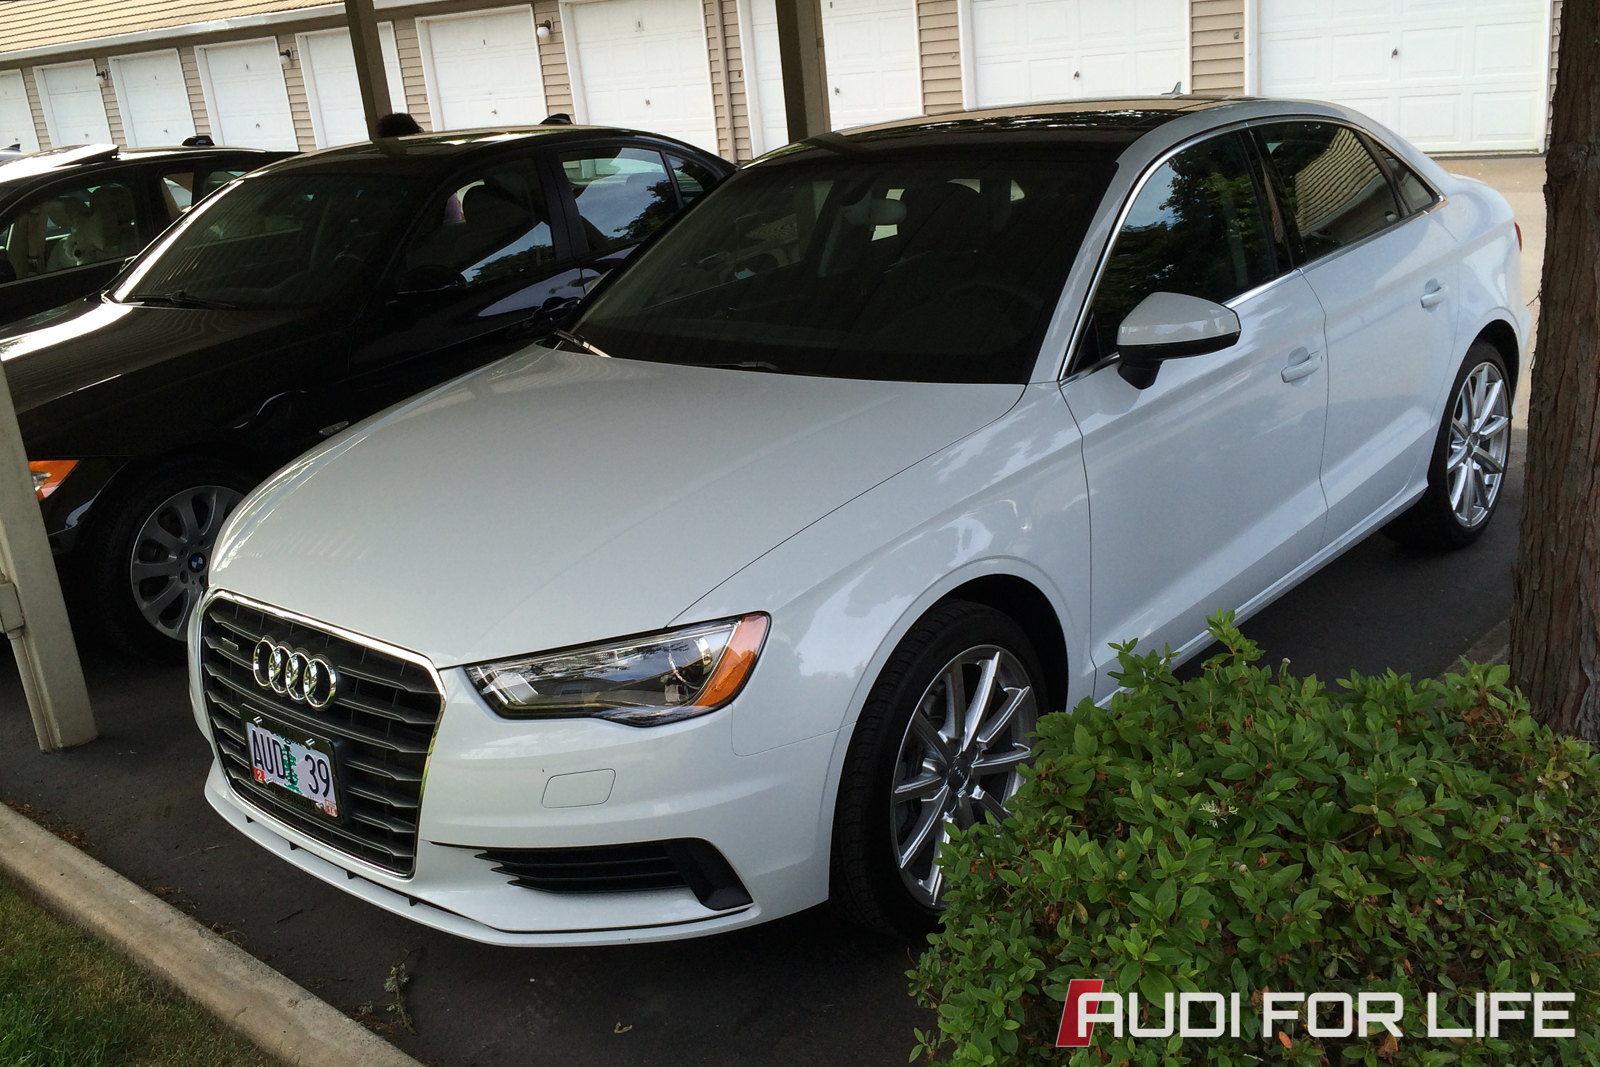 Audi A3 Waiting to be Driven